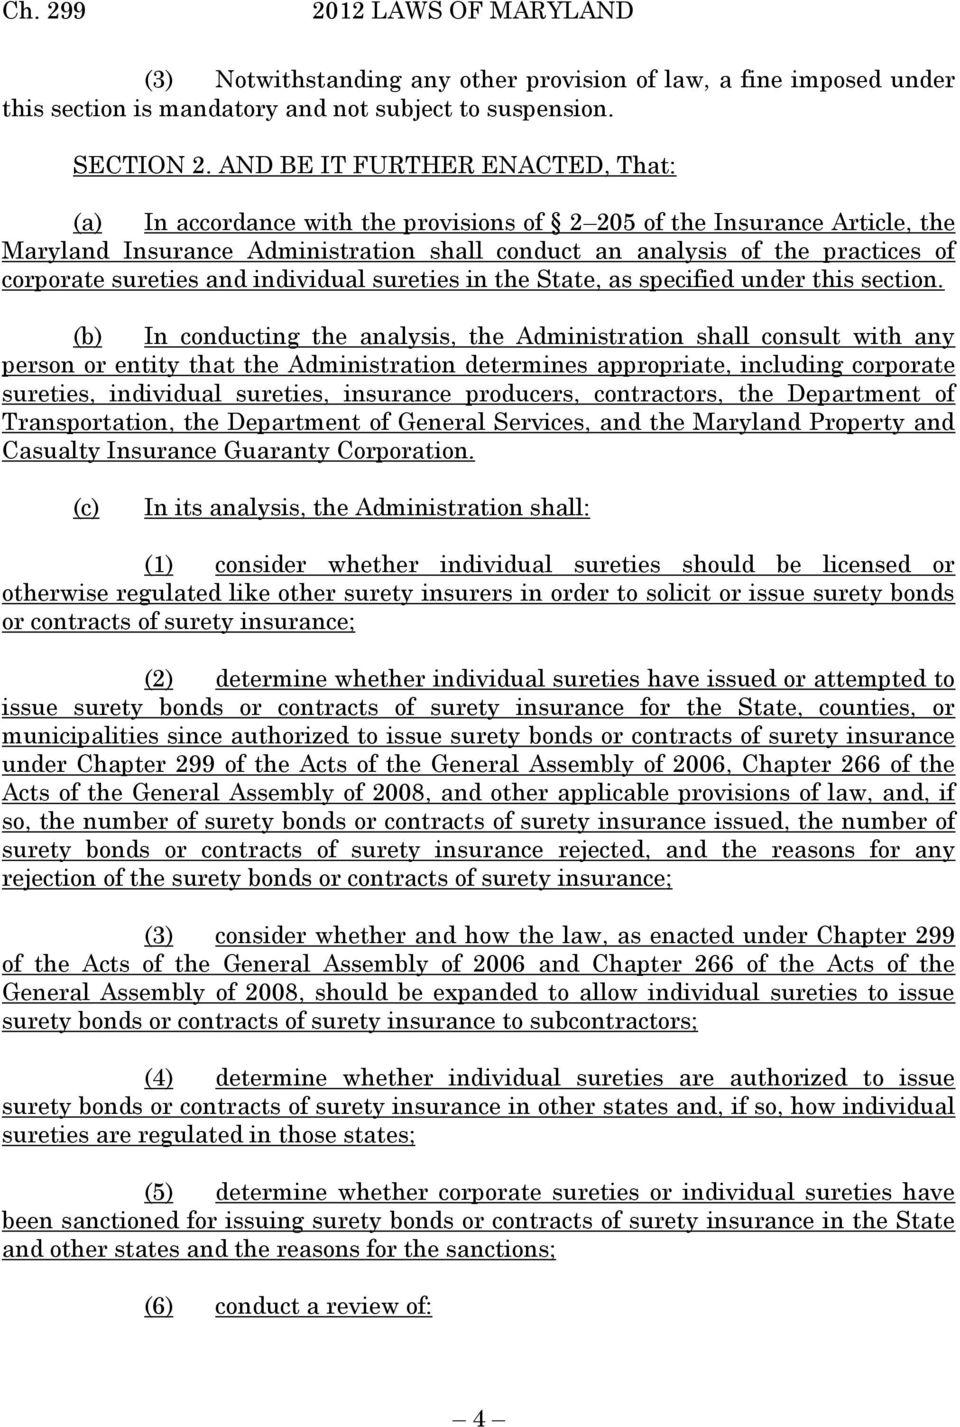 sureties and individual sureties in the State, as specified under this section.